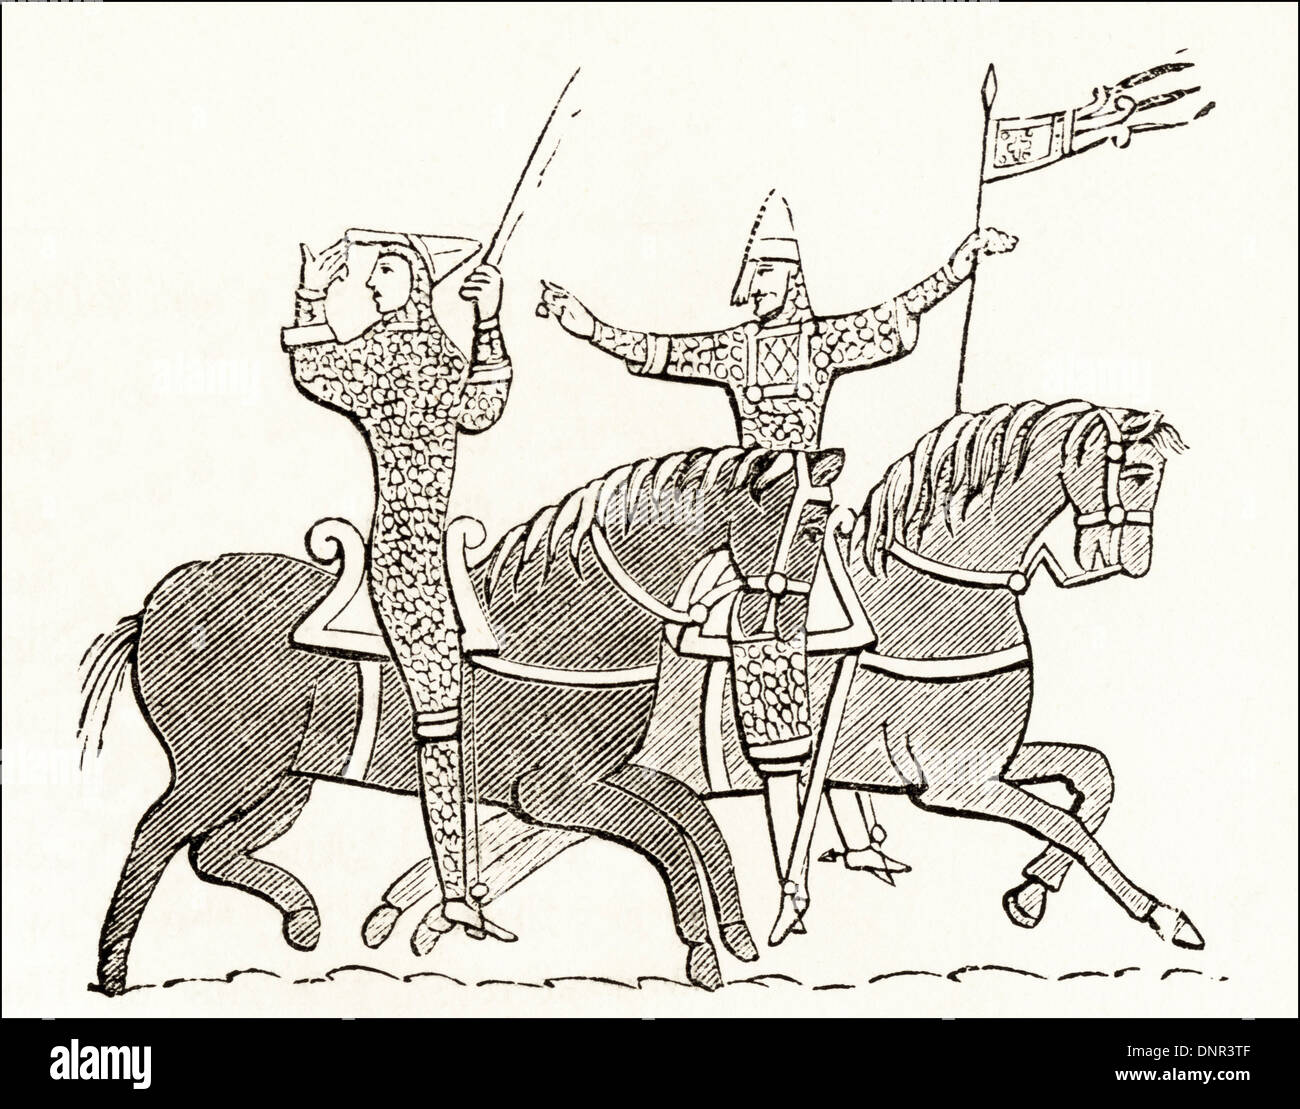 William the Conqueror & Tonstain-le-Blanc with the Consecrated Banner that had been blessed by the Pope at the Battle of Hastings from the Bayeux Tapestry. Victorian woodcut circa 1845. - Stock Image